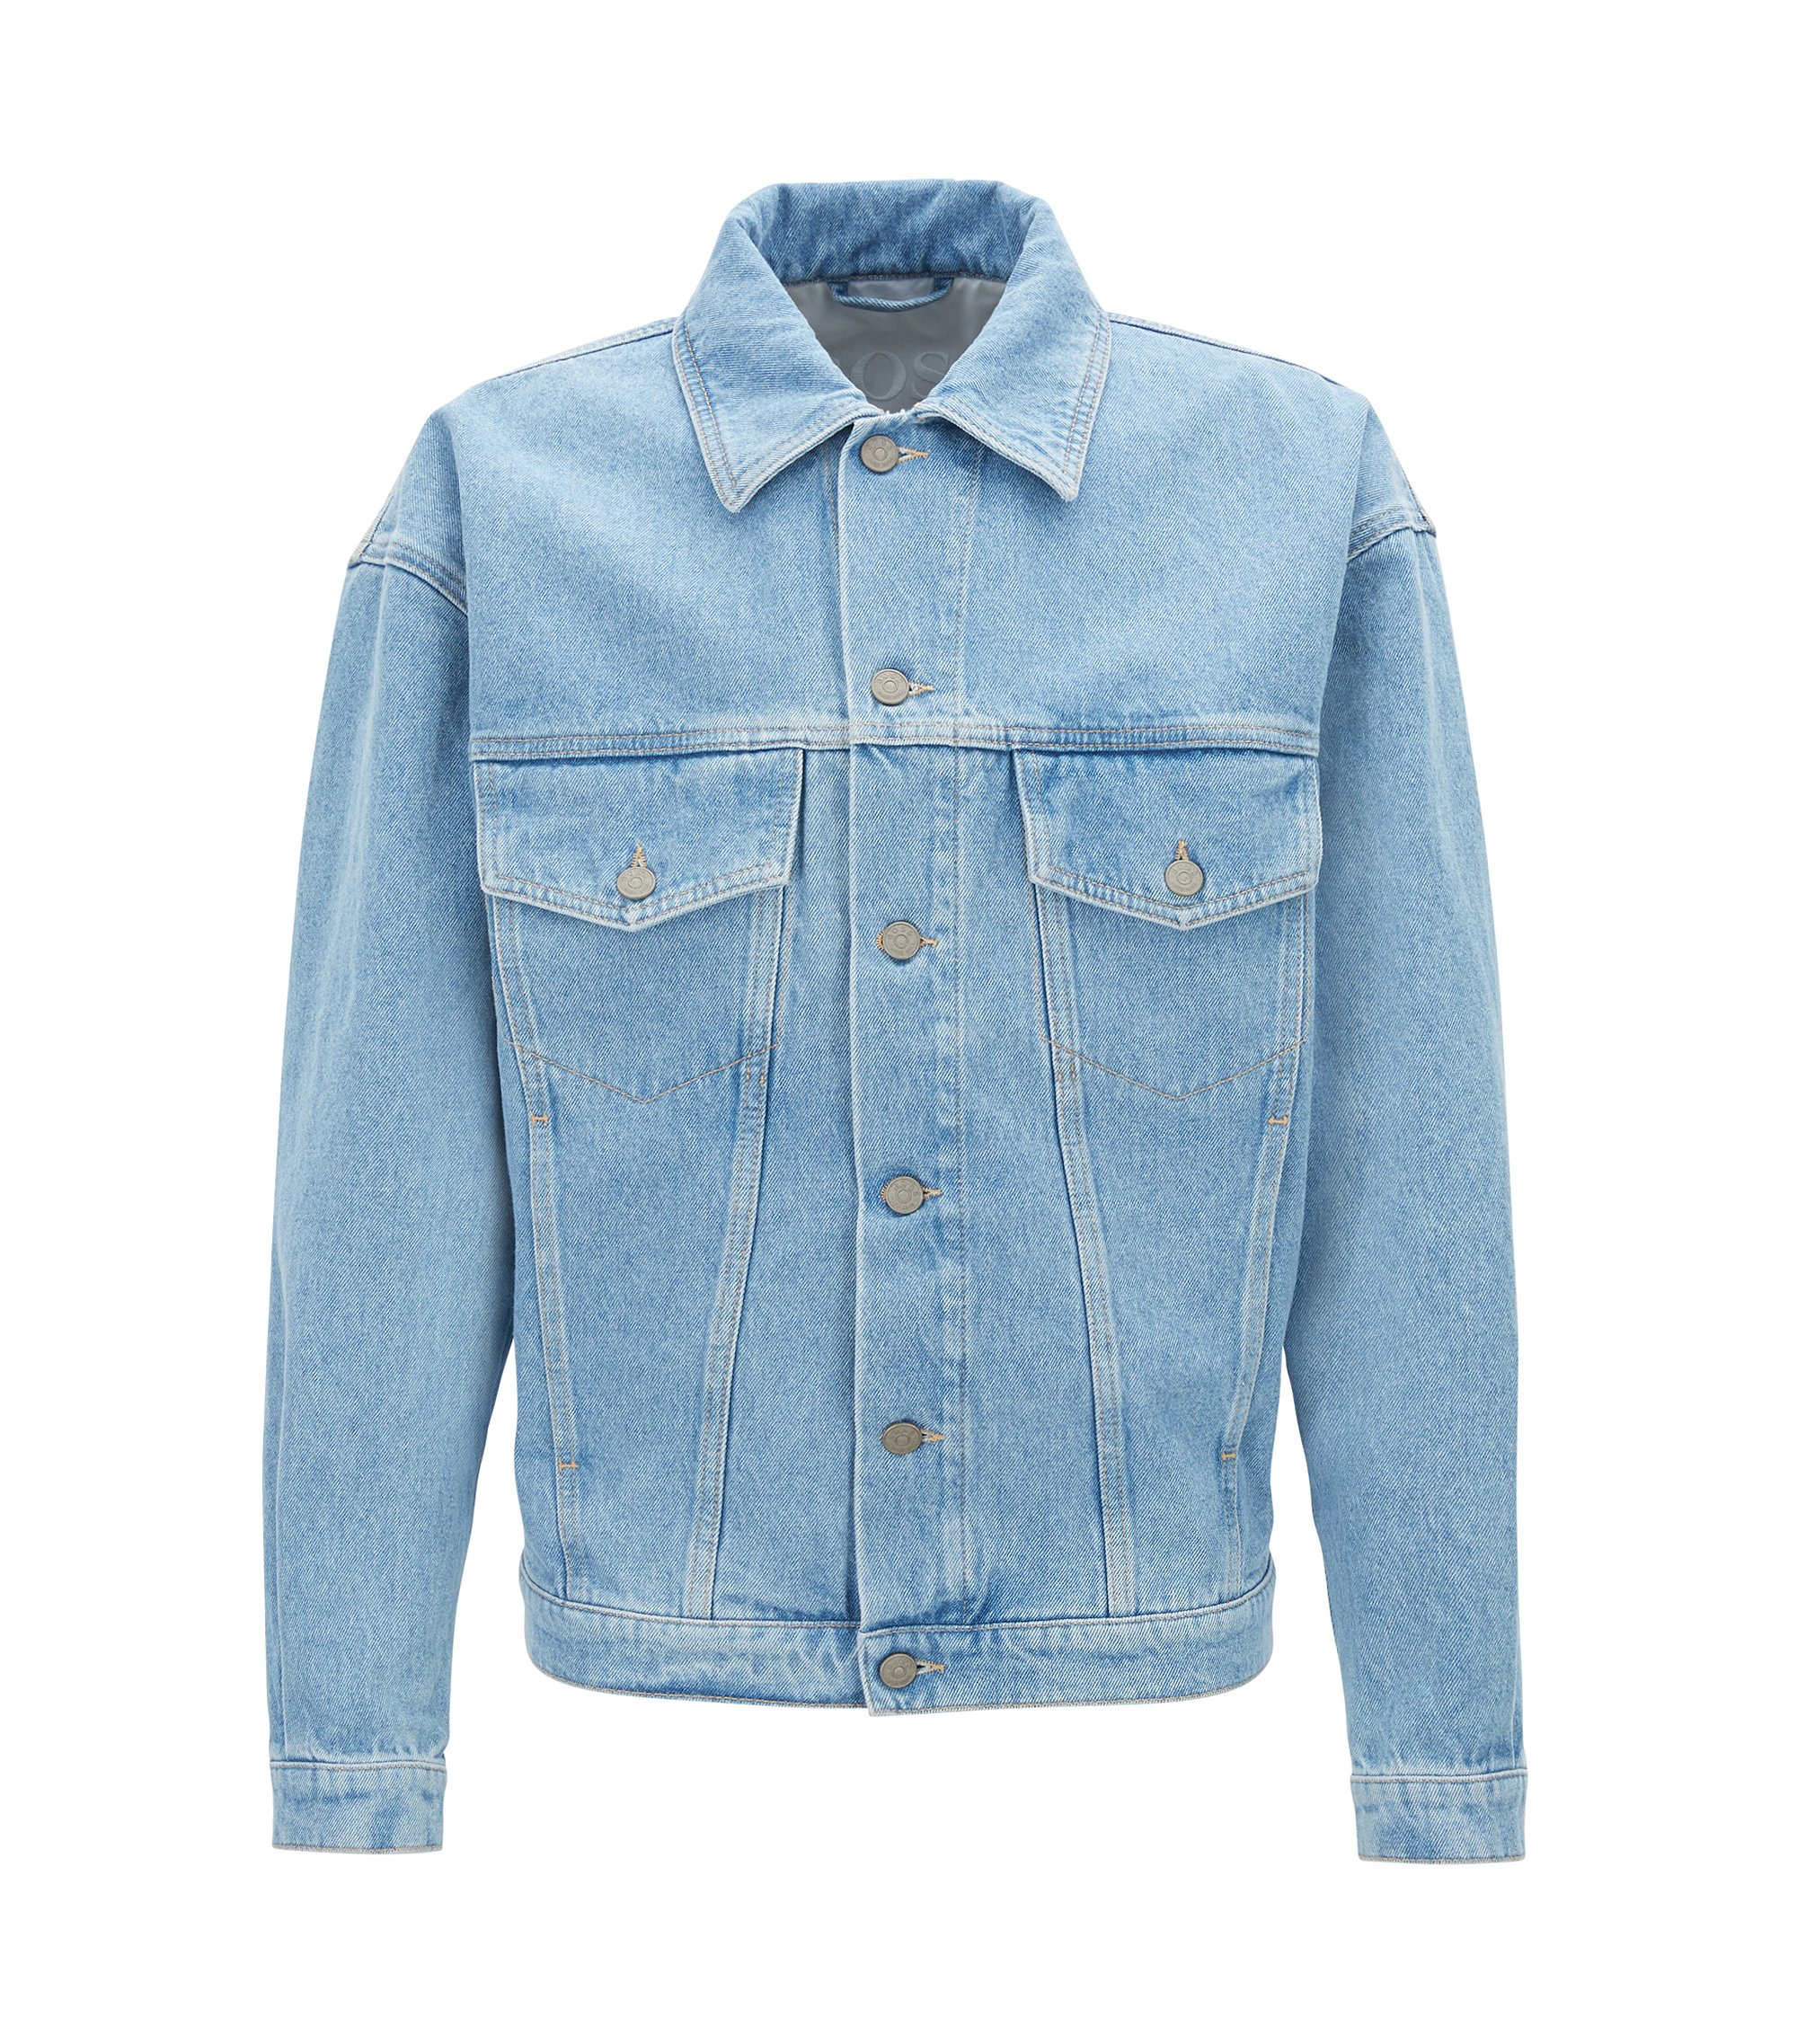 Giacca trucker relaxed fit in denim rigido blu acceso, Blu